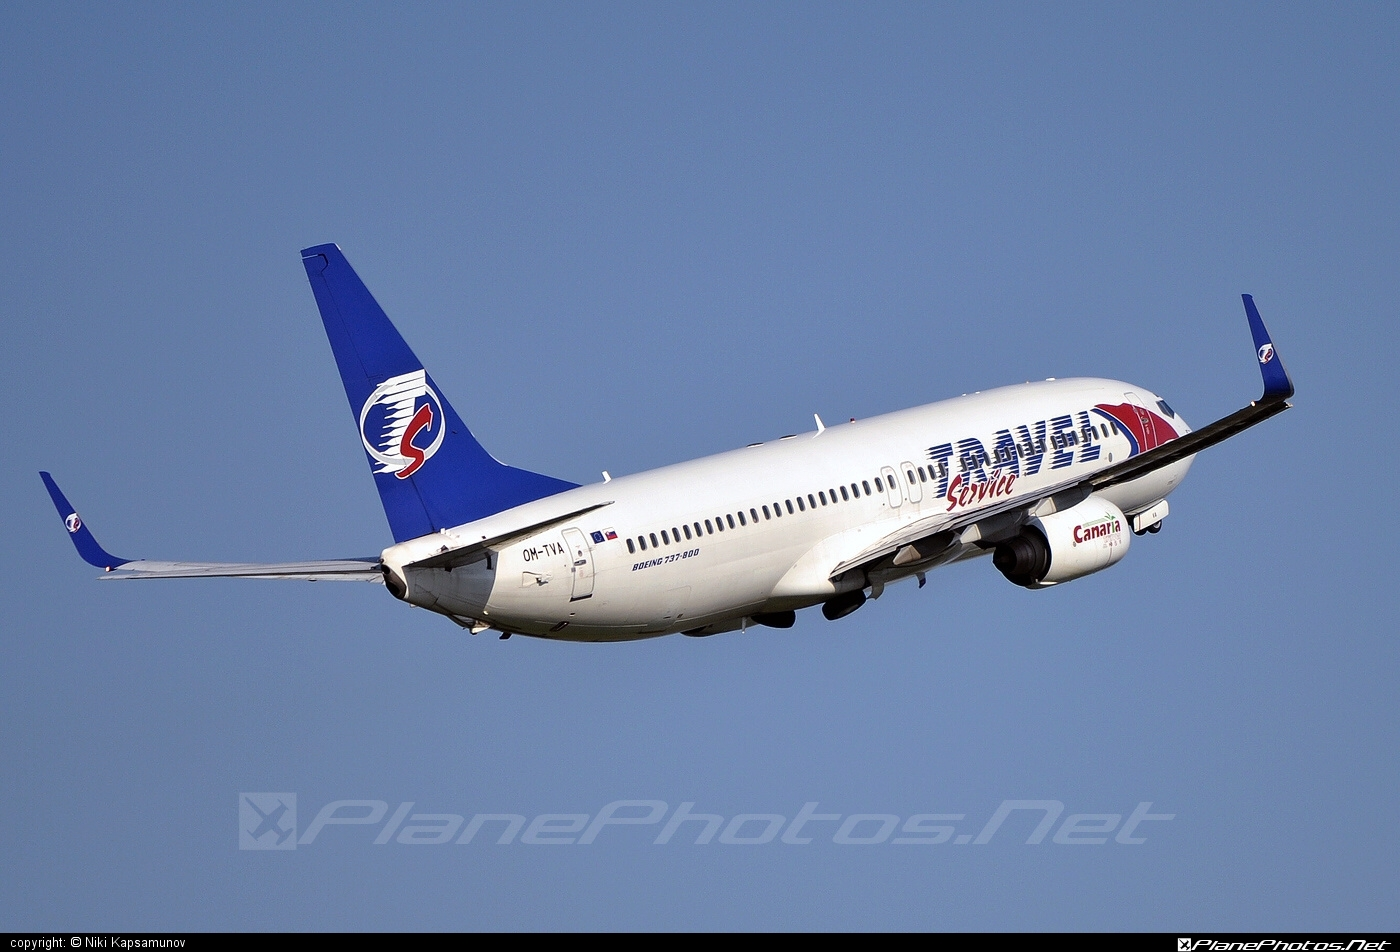 Boeing 737-800 - OM-TVA operated by Travel Service #b737 #b737nextgen #b737ng #boeing #boeing737 #travelservice